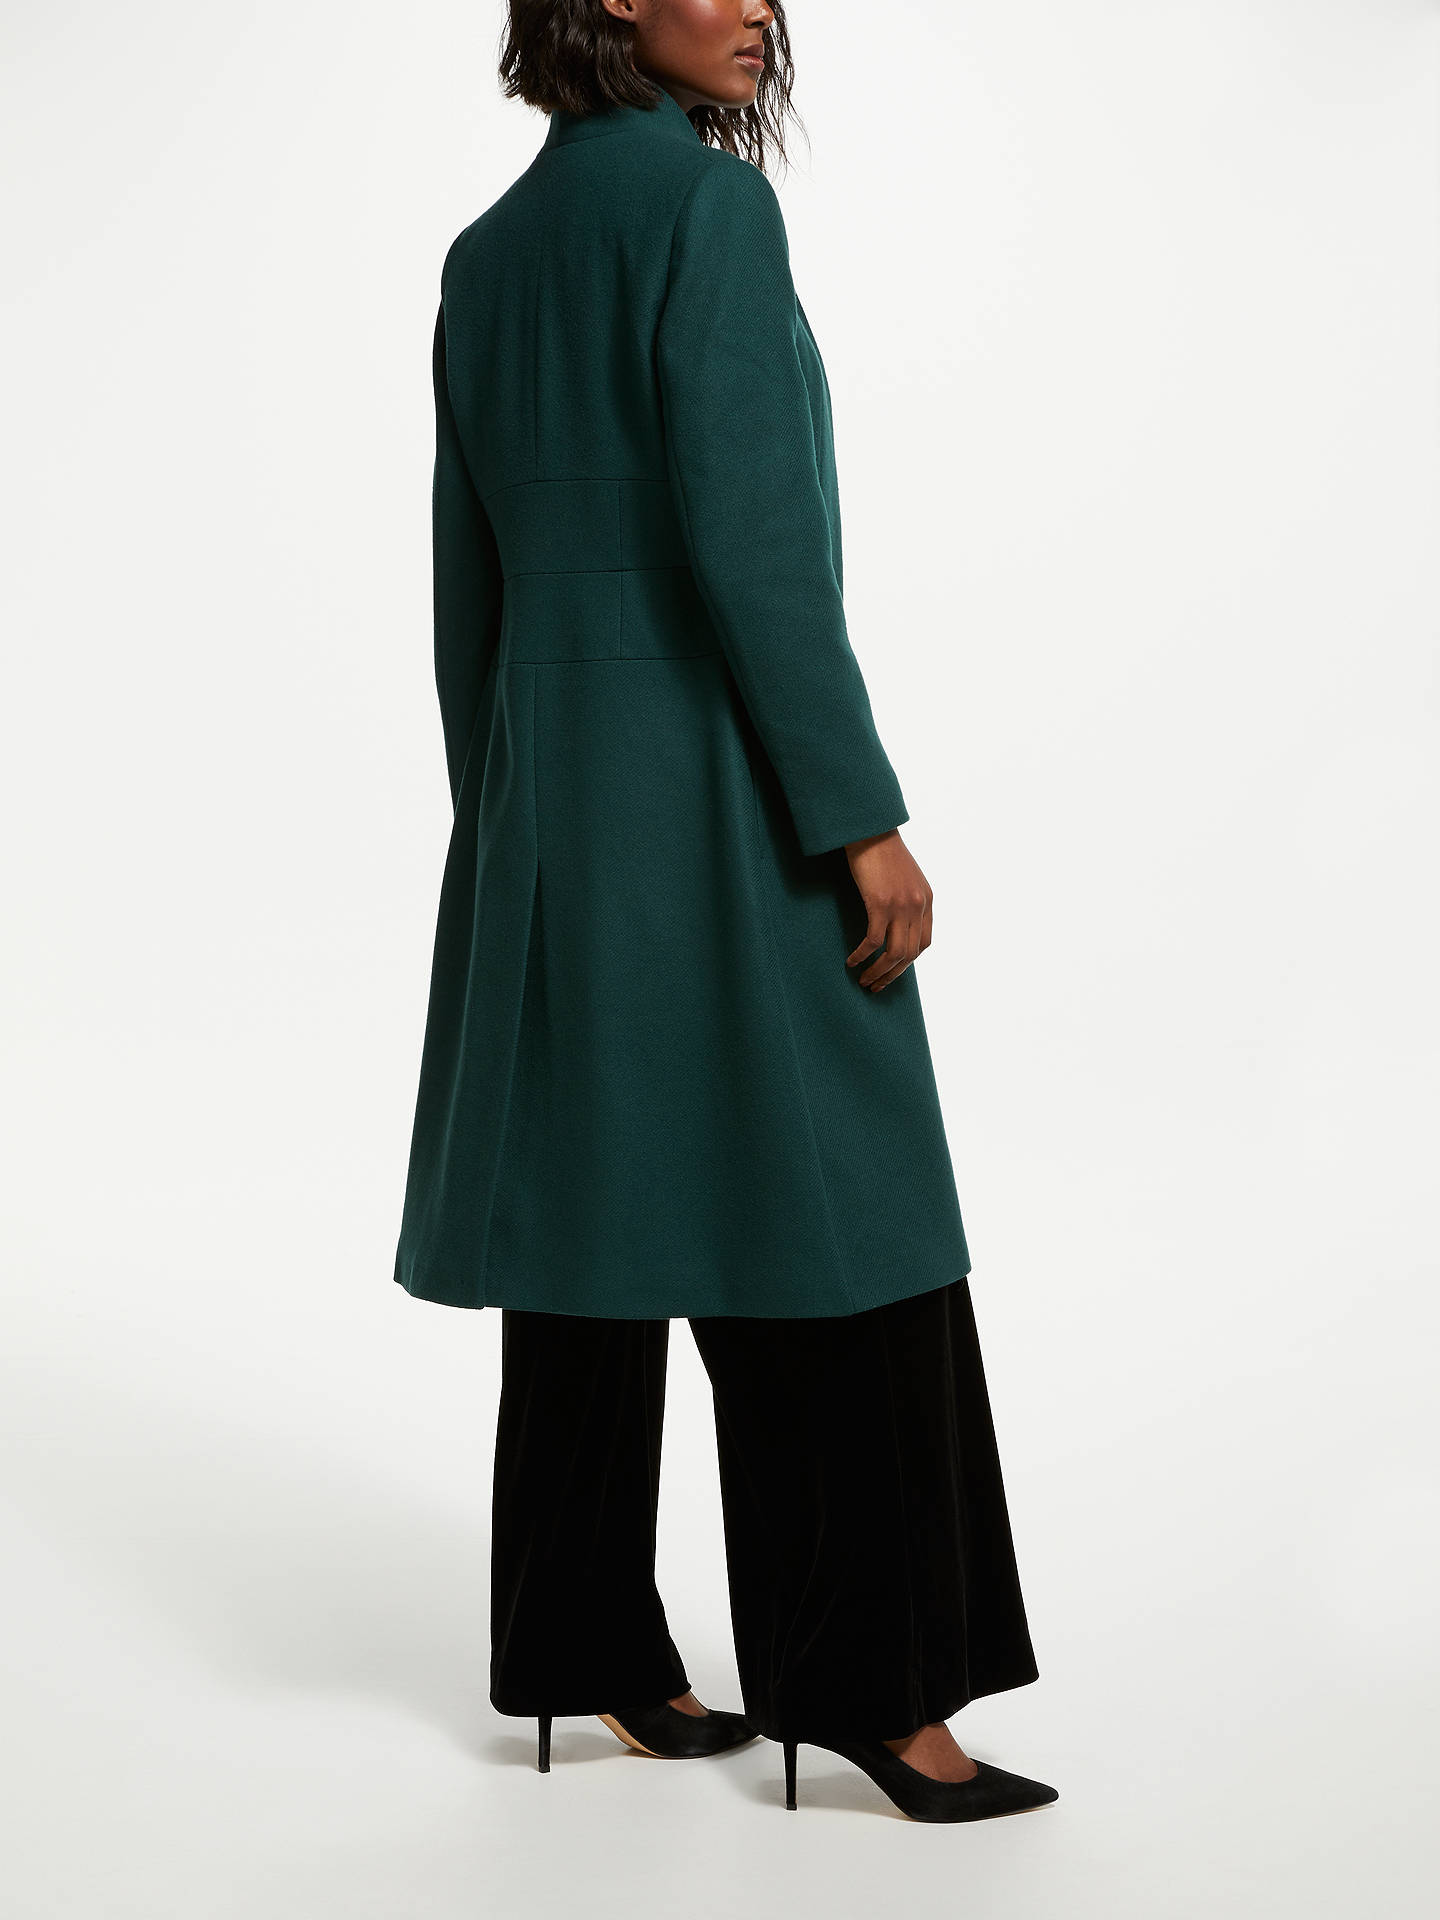 BuyBruce by Bruce Oldfield Funnel Coat, Green, 8 Online at johnlewis.com